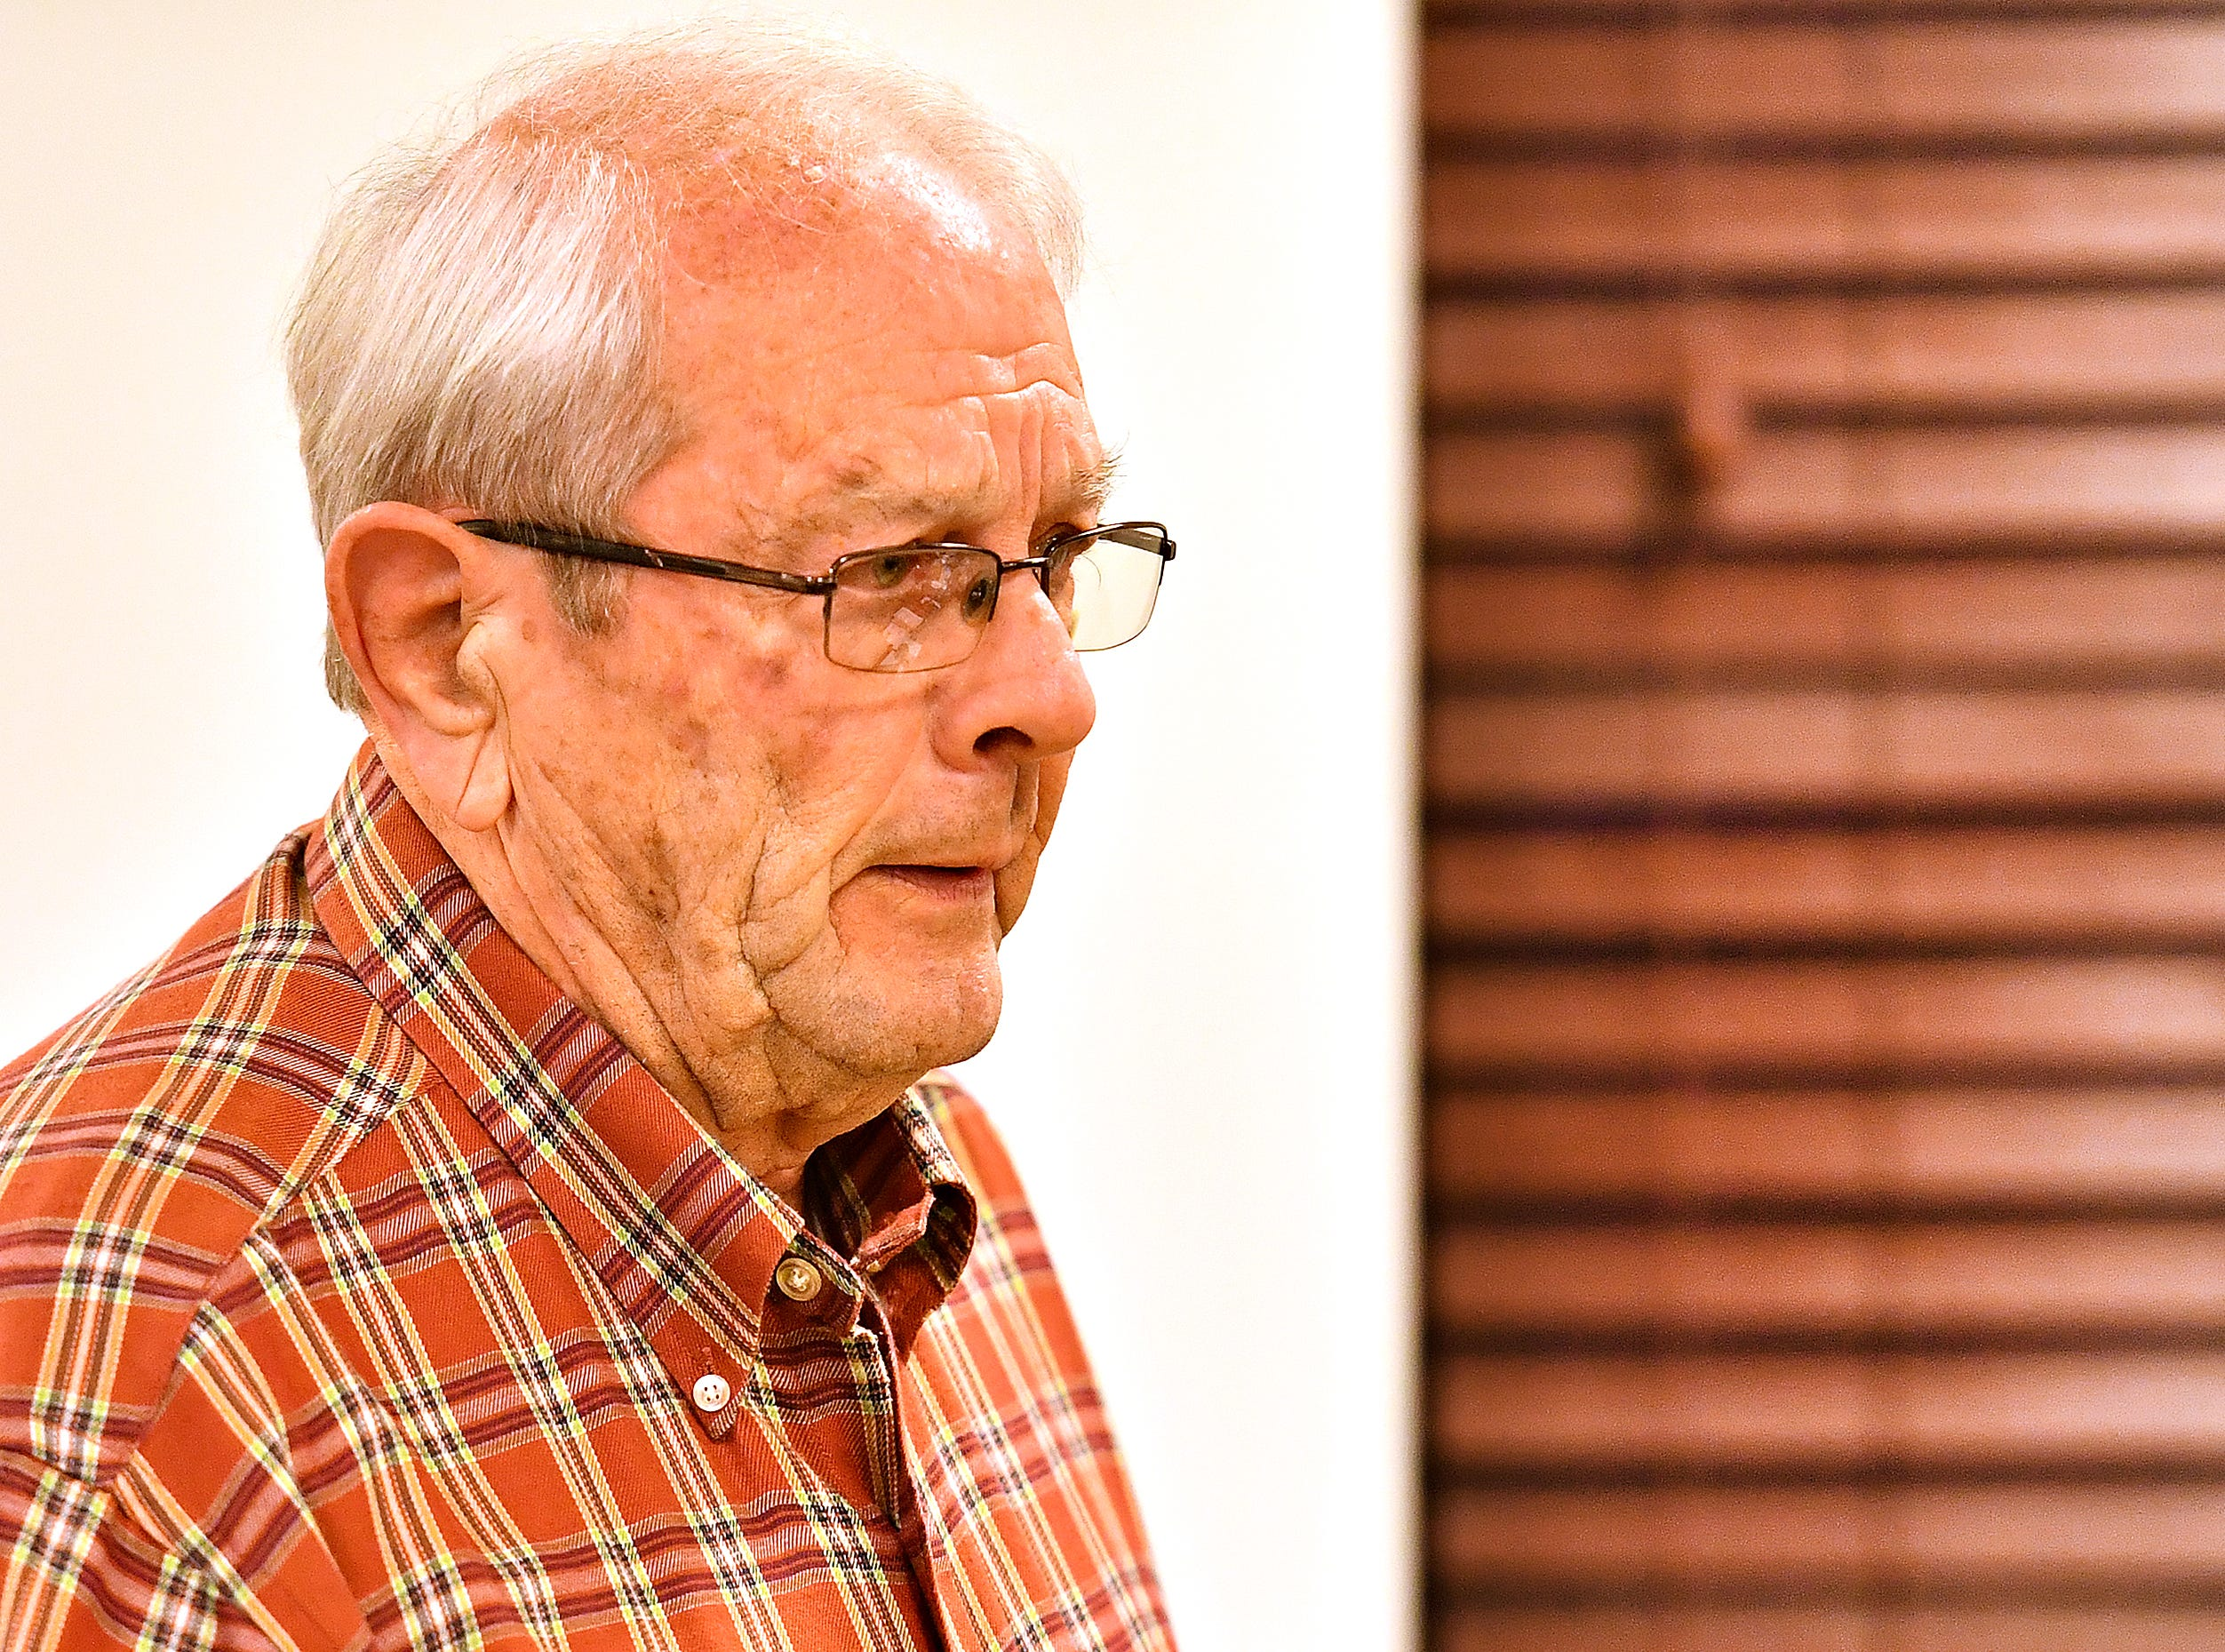 John Robert, of North Codorus Township, speaks during public comment at the Southwestern Regional Police Department's monthly board meeting at the station in Heidelberg Township, Wednesday, April 10, 2019. Dawn J. Sagert photo